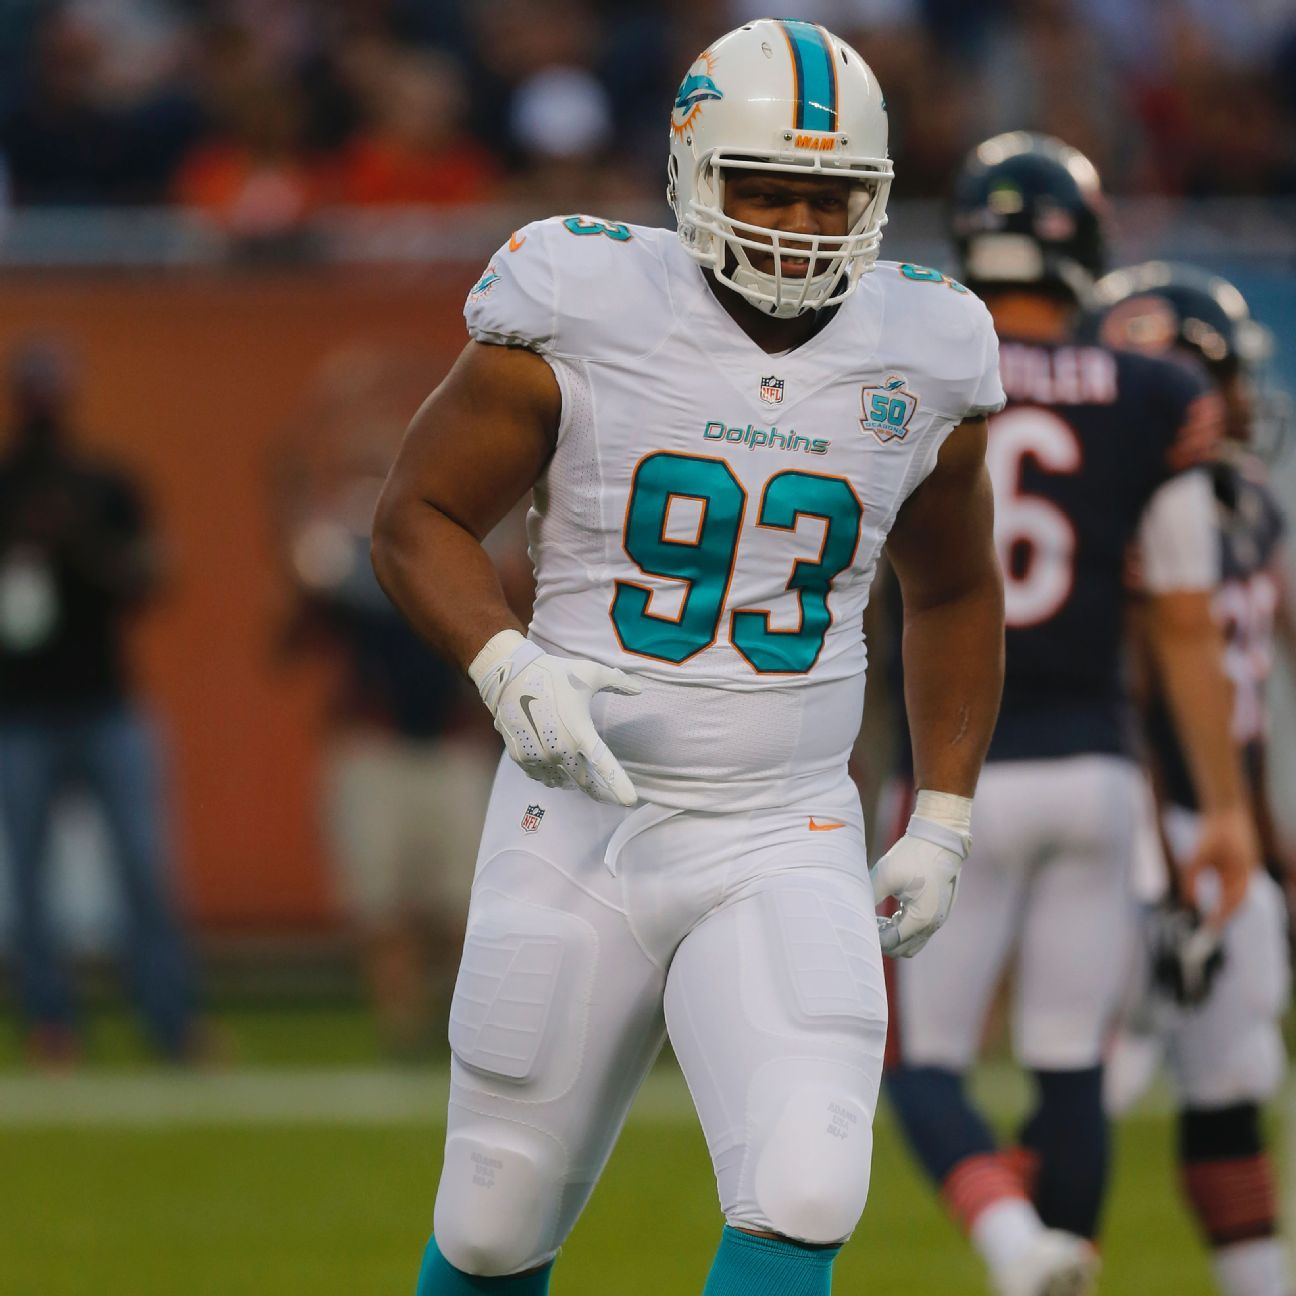 The Raiders Can And Should Sign Ndamukong Suh: Ndamukong Suh, Dolphins Have Respect For Redskins QB Kirk